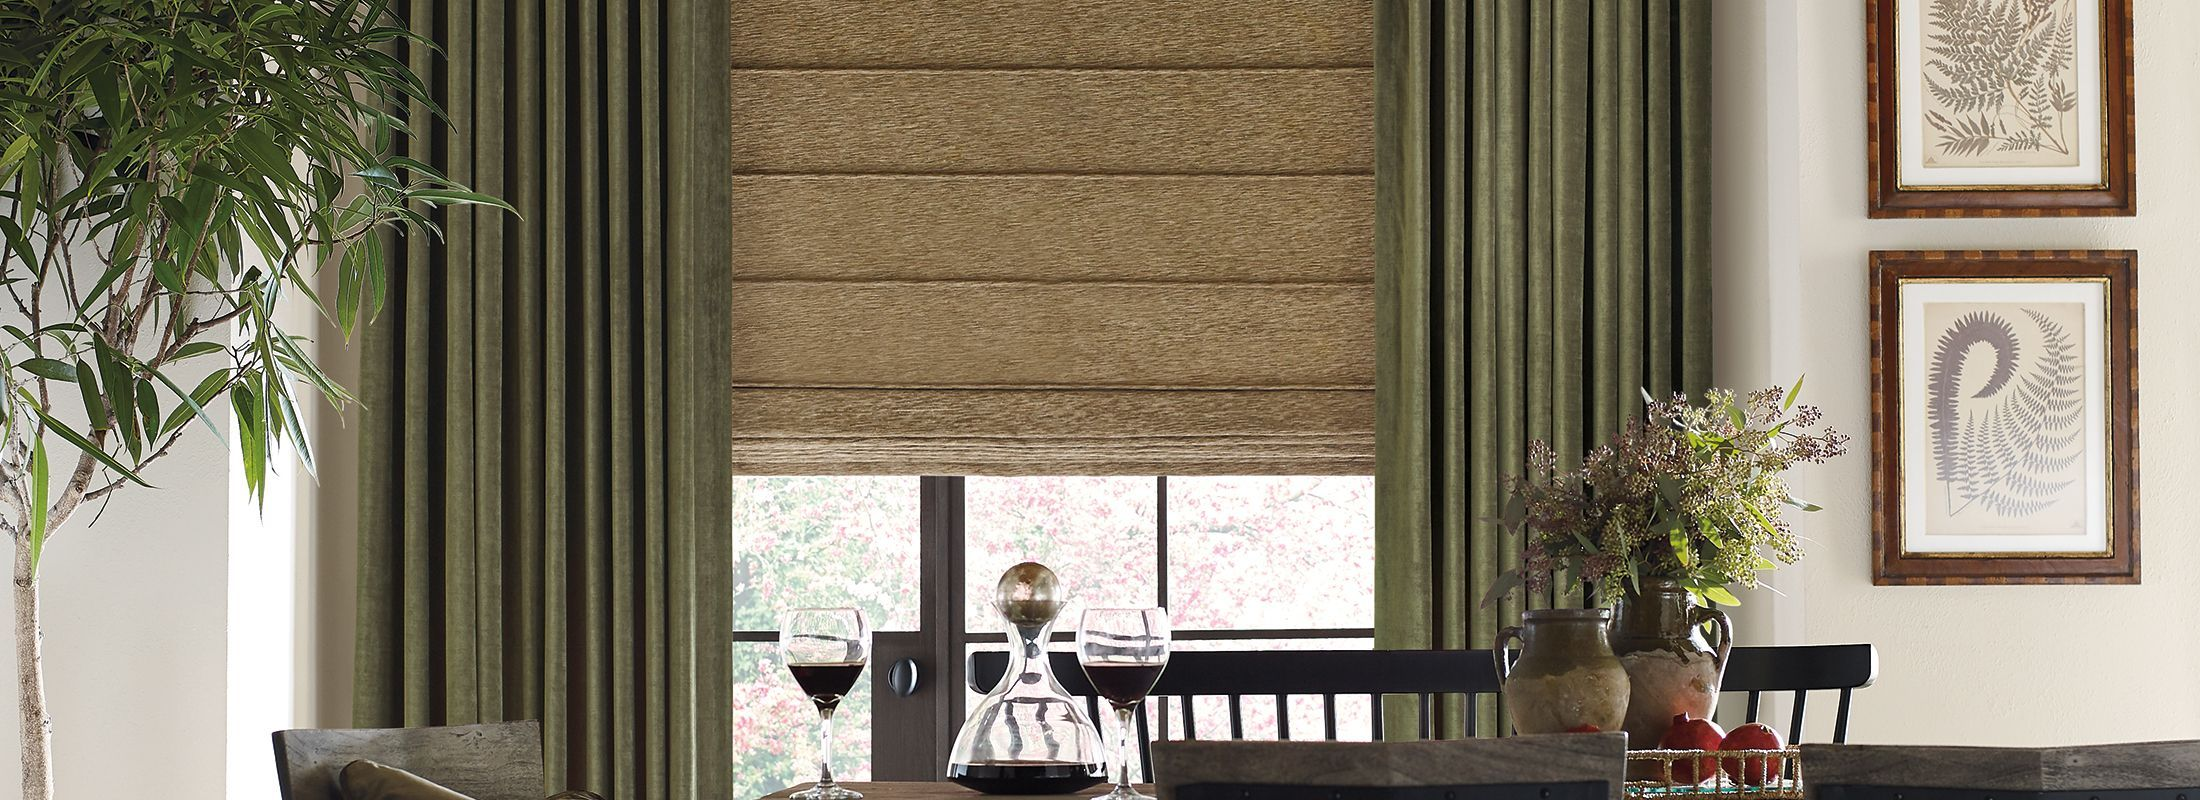 Design Studio Roman Shades in Cordero Keyline